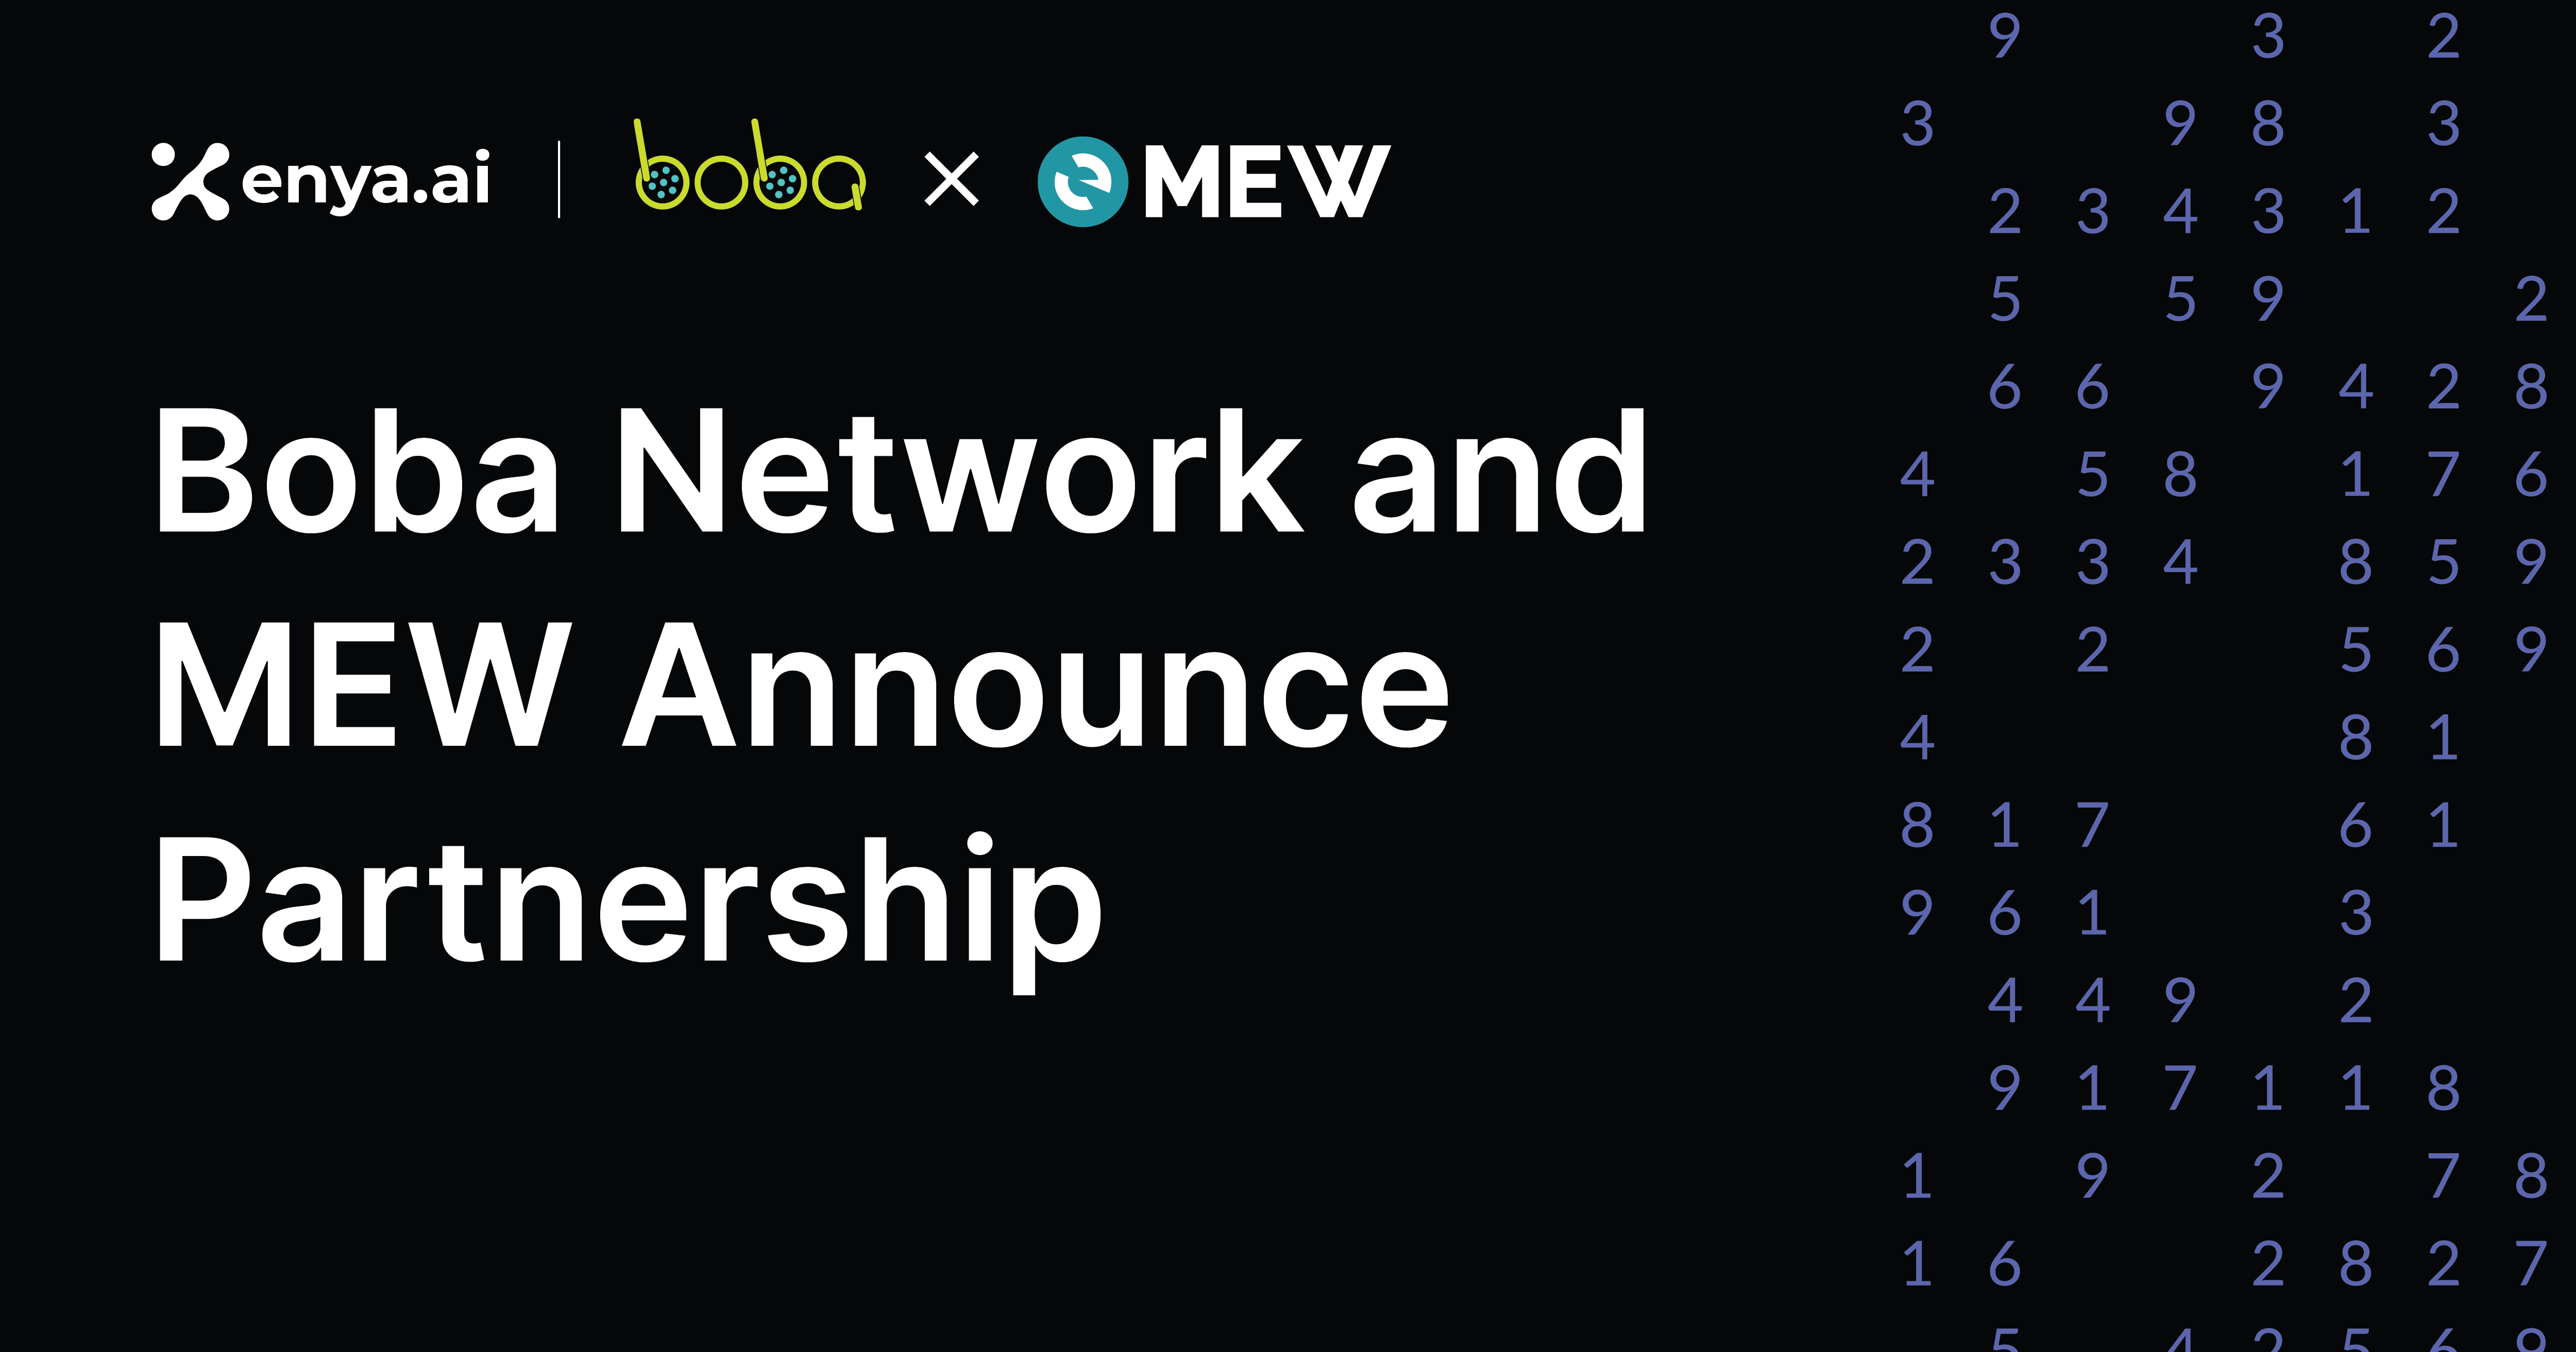 Boba Network Partners with MEW